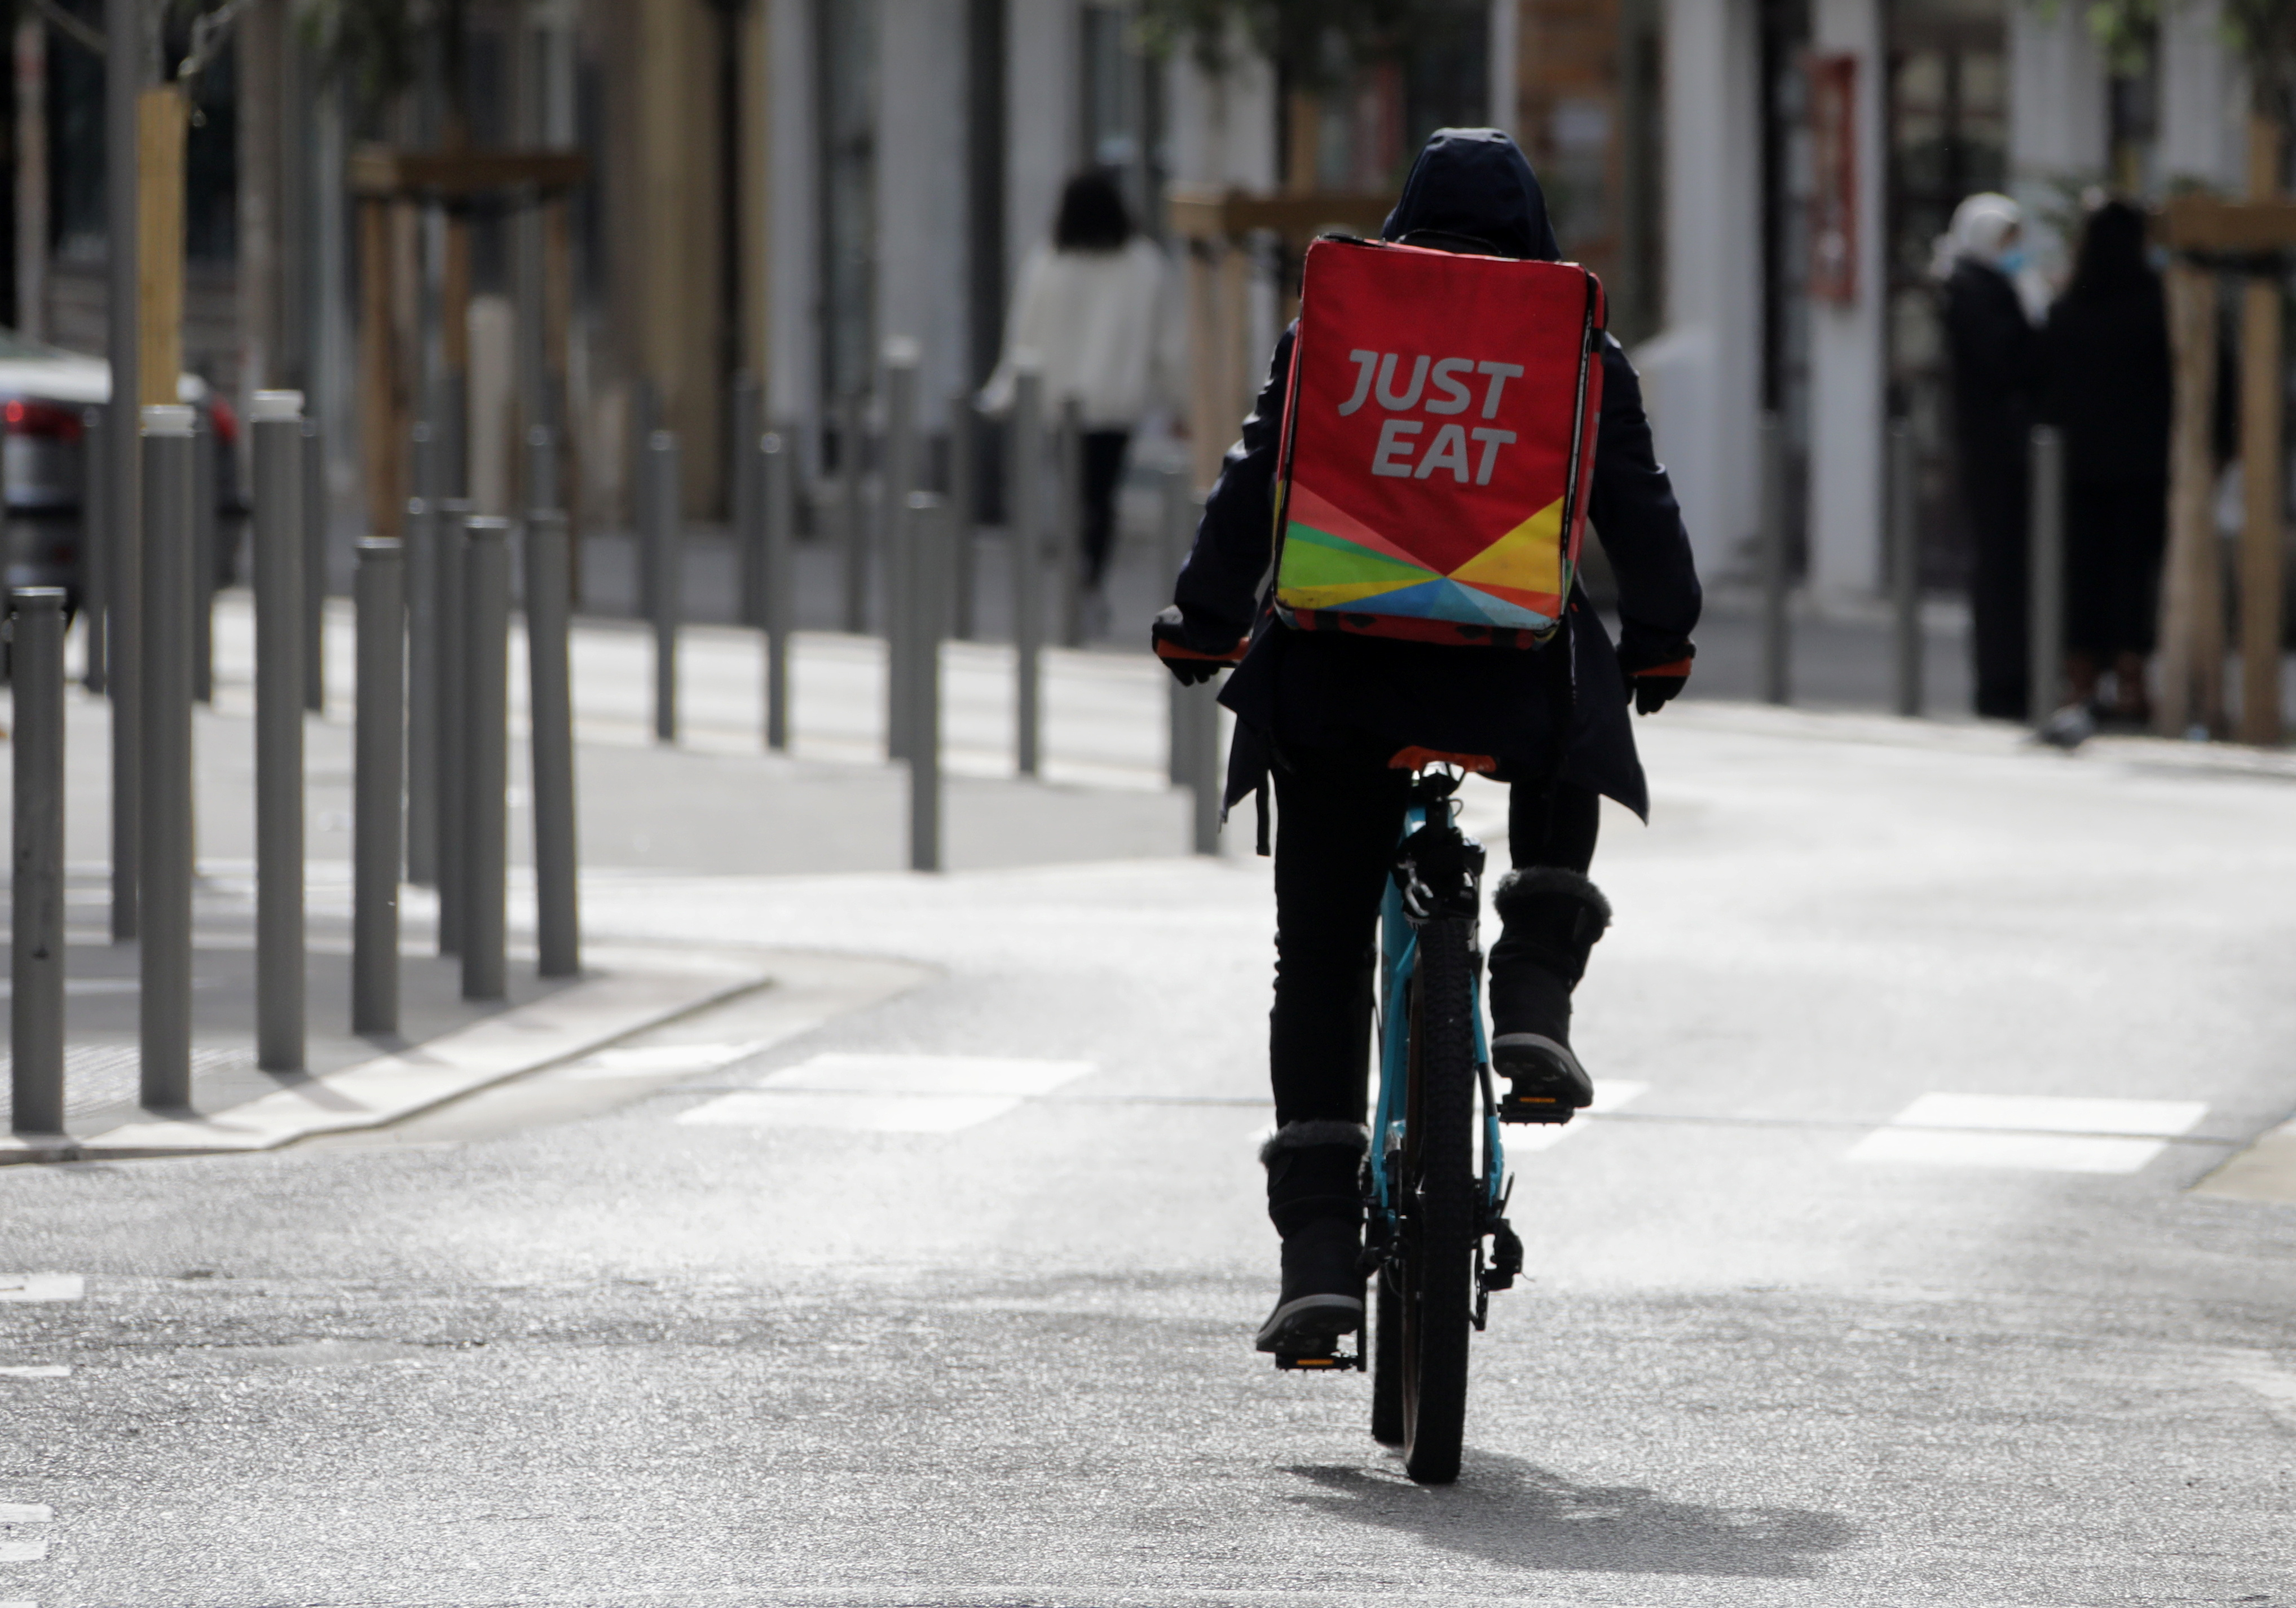 A Just Eat delivery rider is seen in Nice, France, February 16, 2021. REUTERS/Eric Gaillard